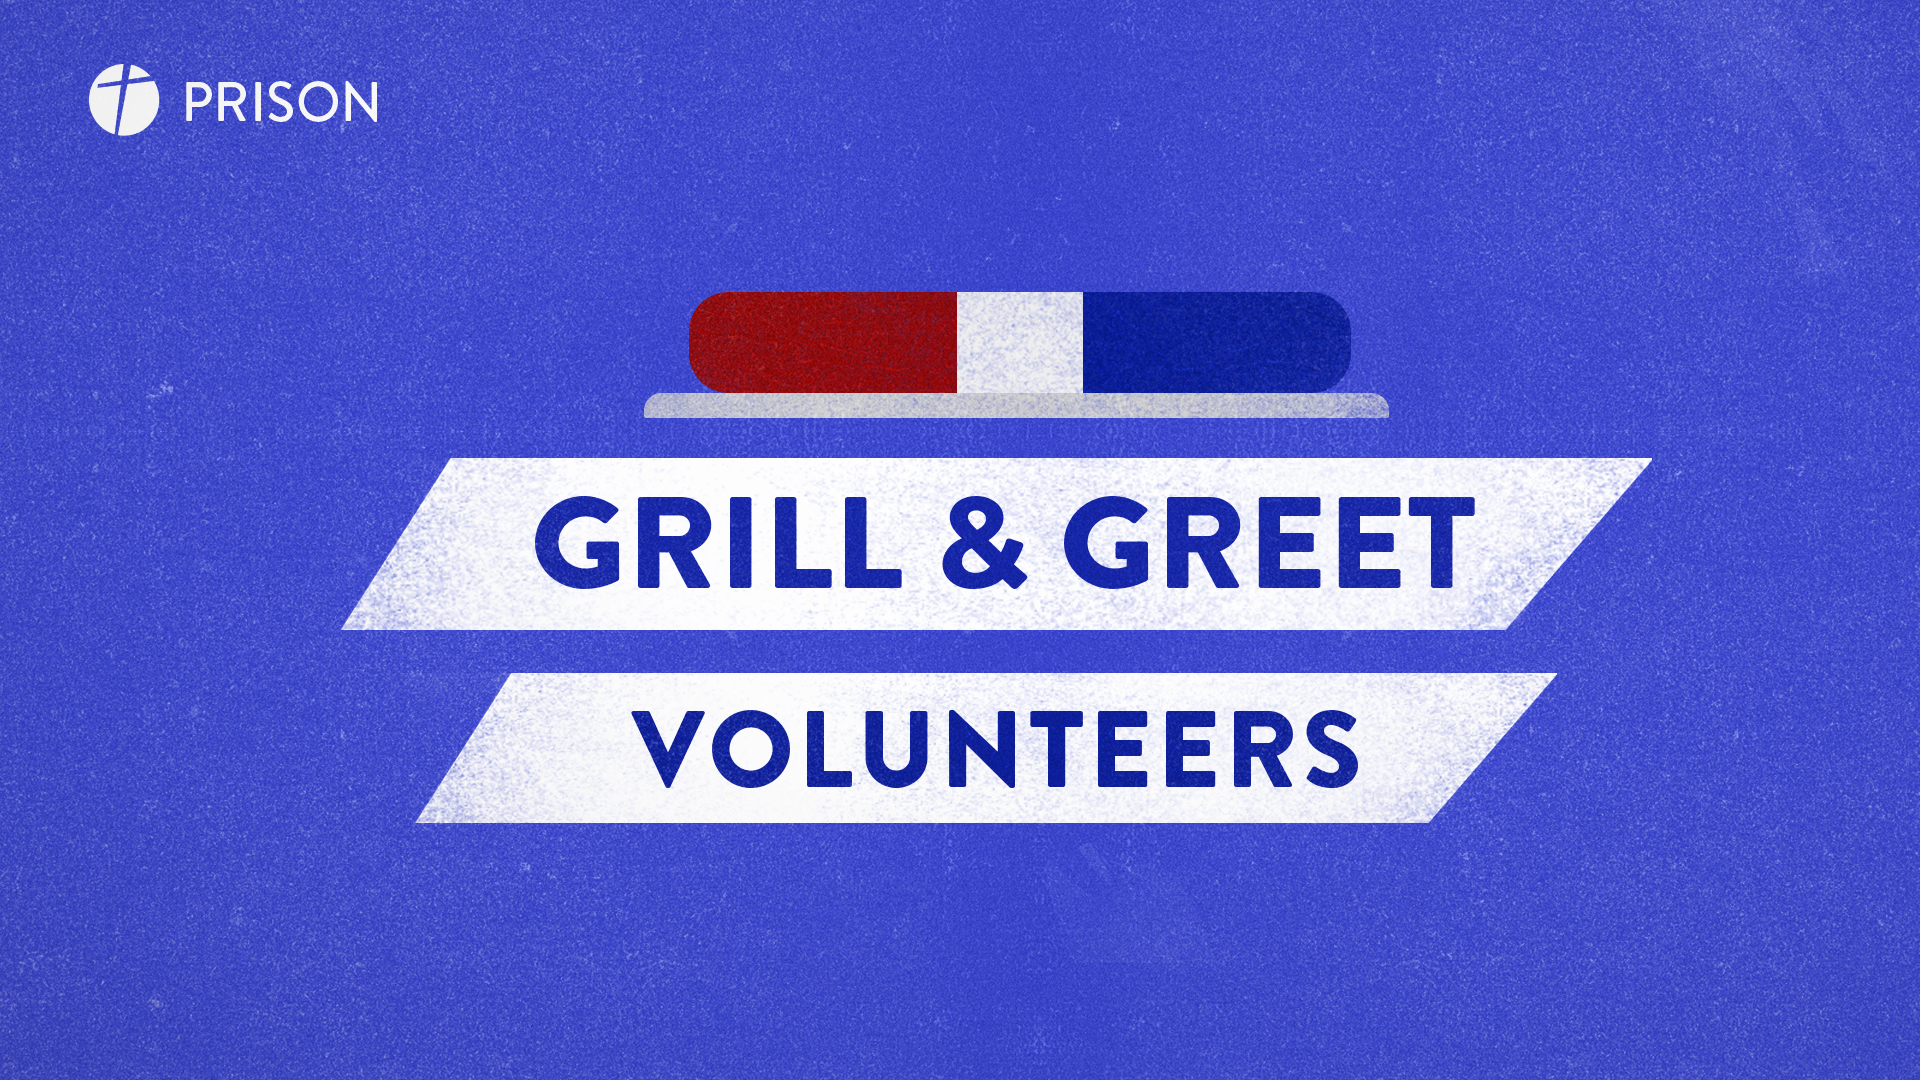 Grill   greet volunteers only